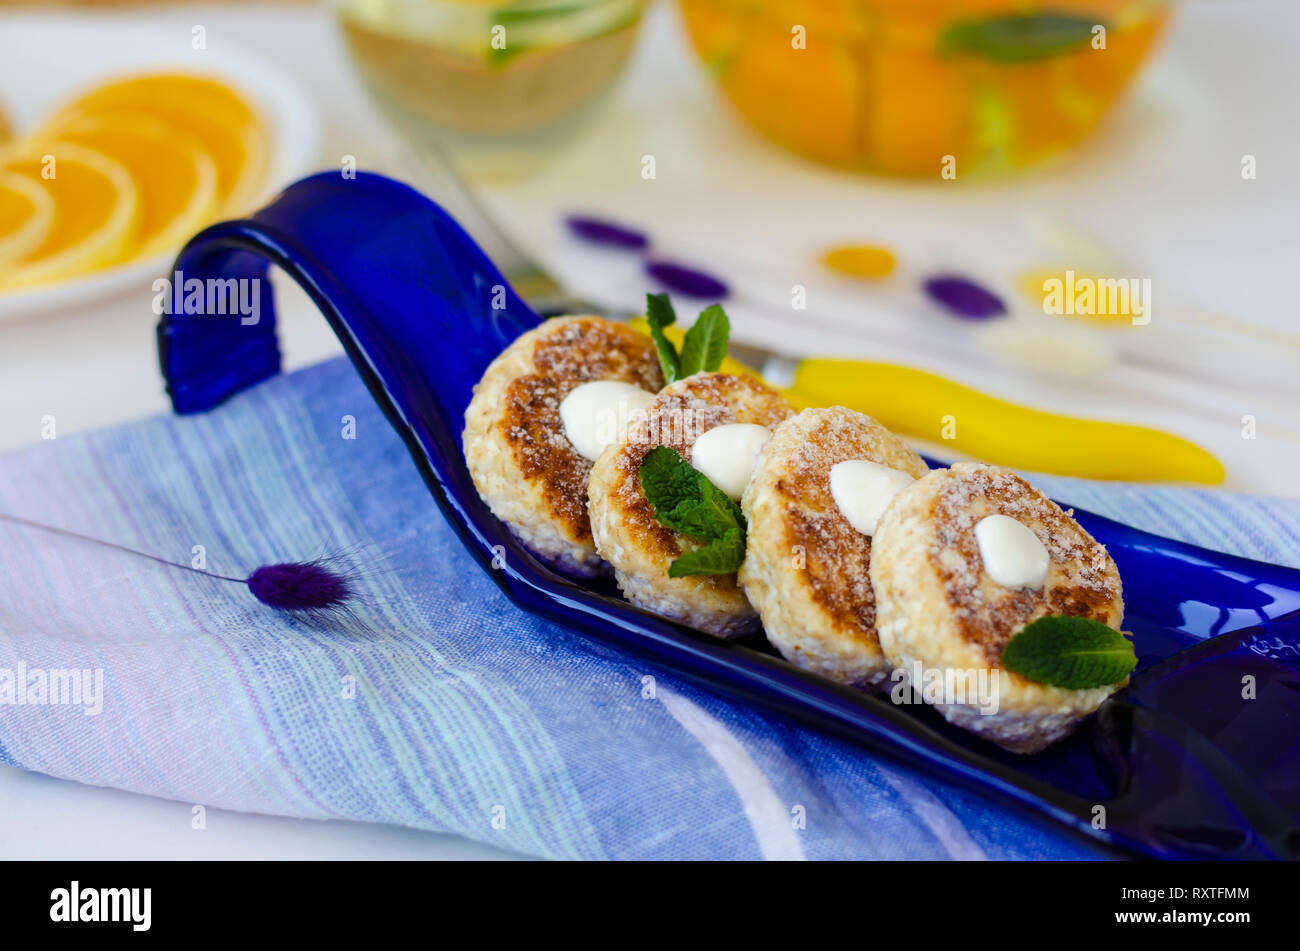 Healthy Breakfast Table With Cheesecakes From Cottage Cheese With